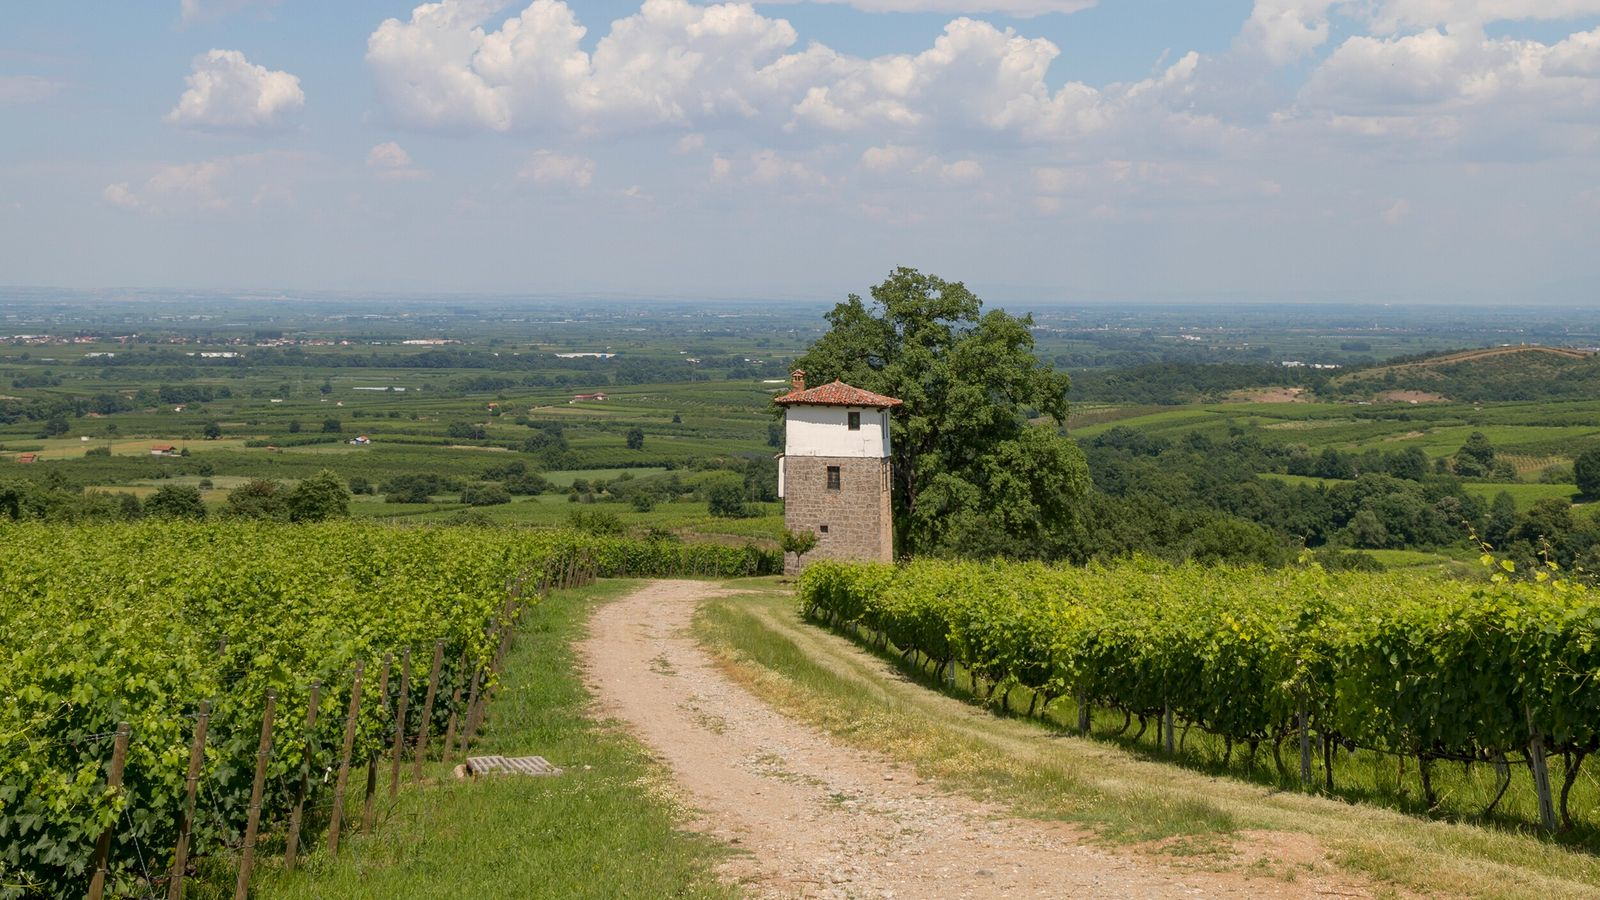 In Naoussa, on the flanks of the Vermio Mountains, grapes — especially the Xinomavro variety — ...